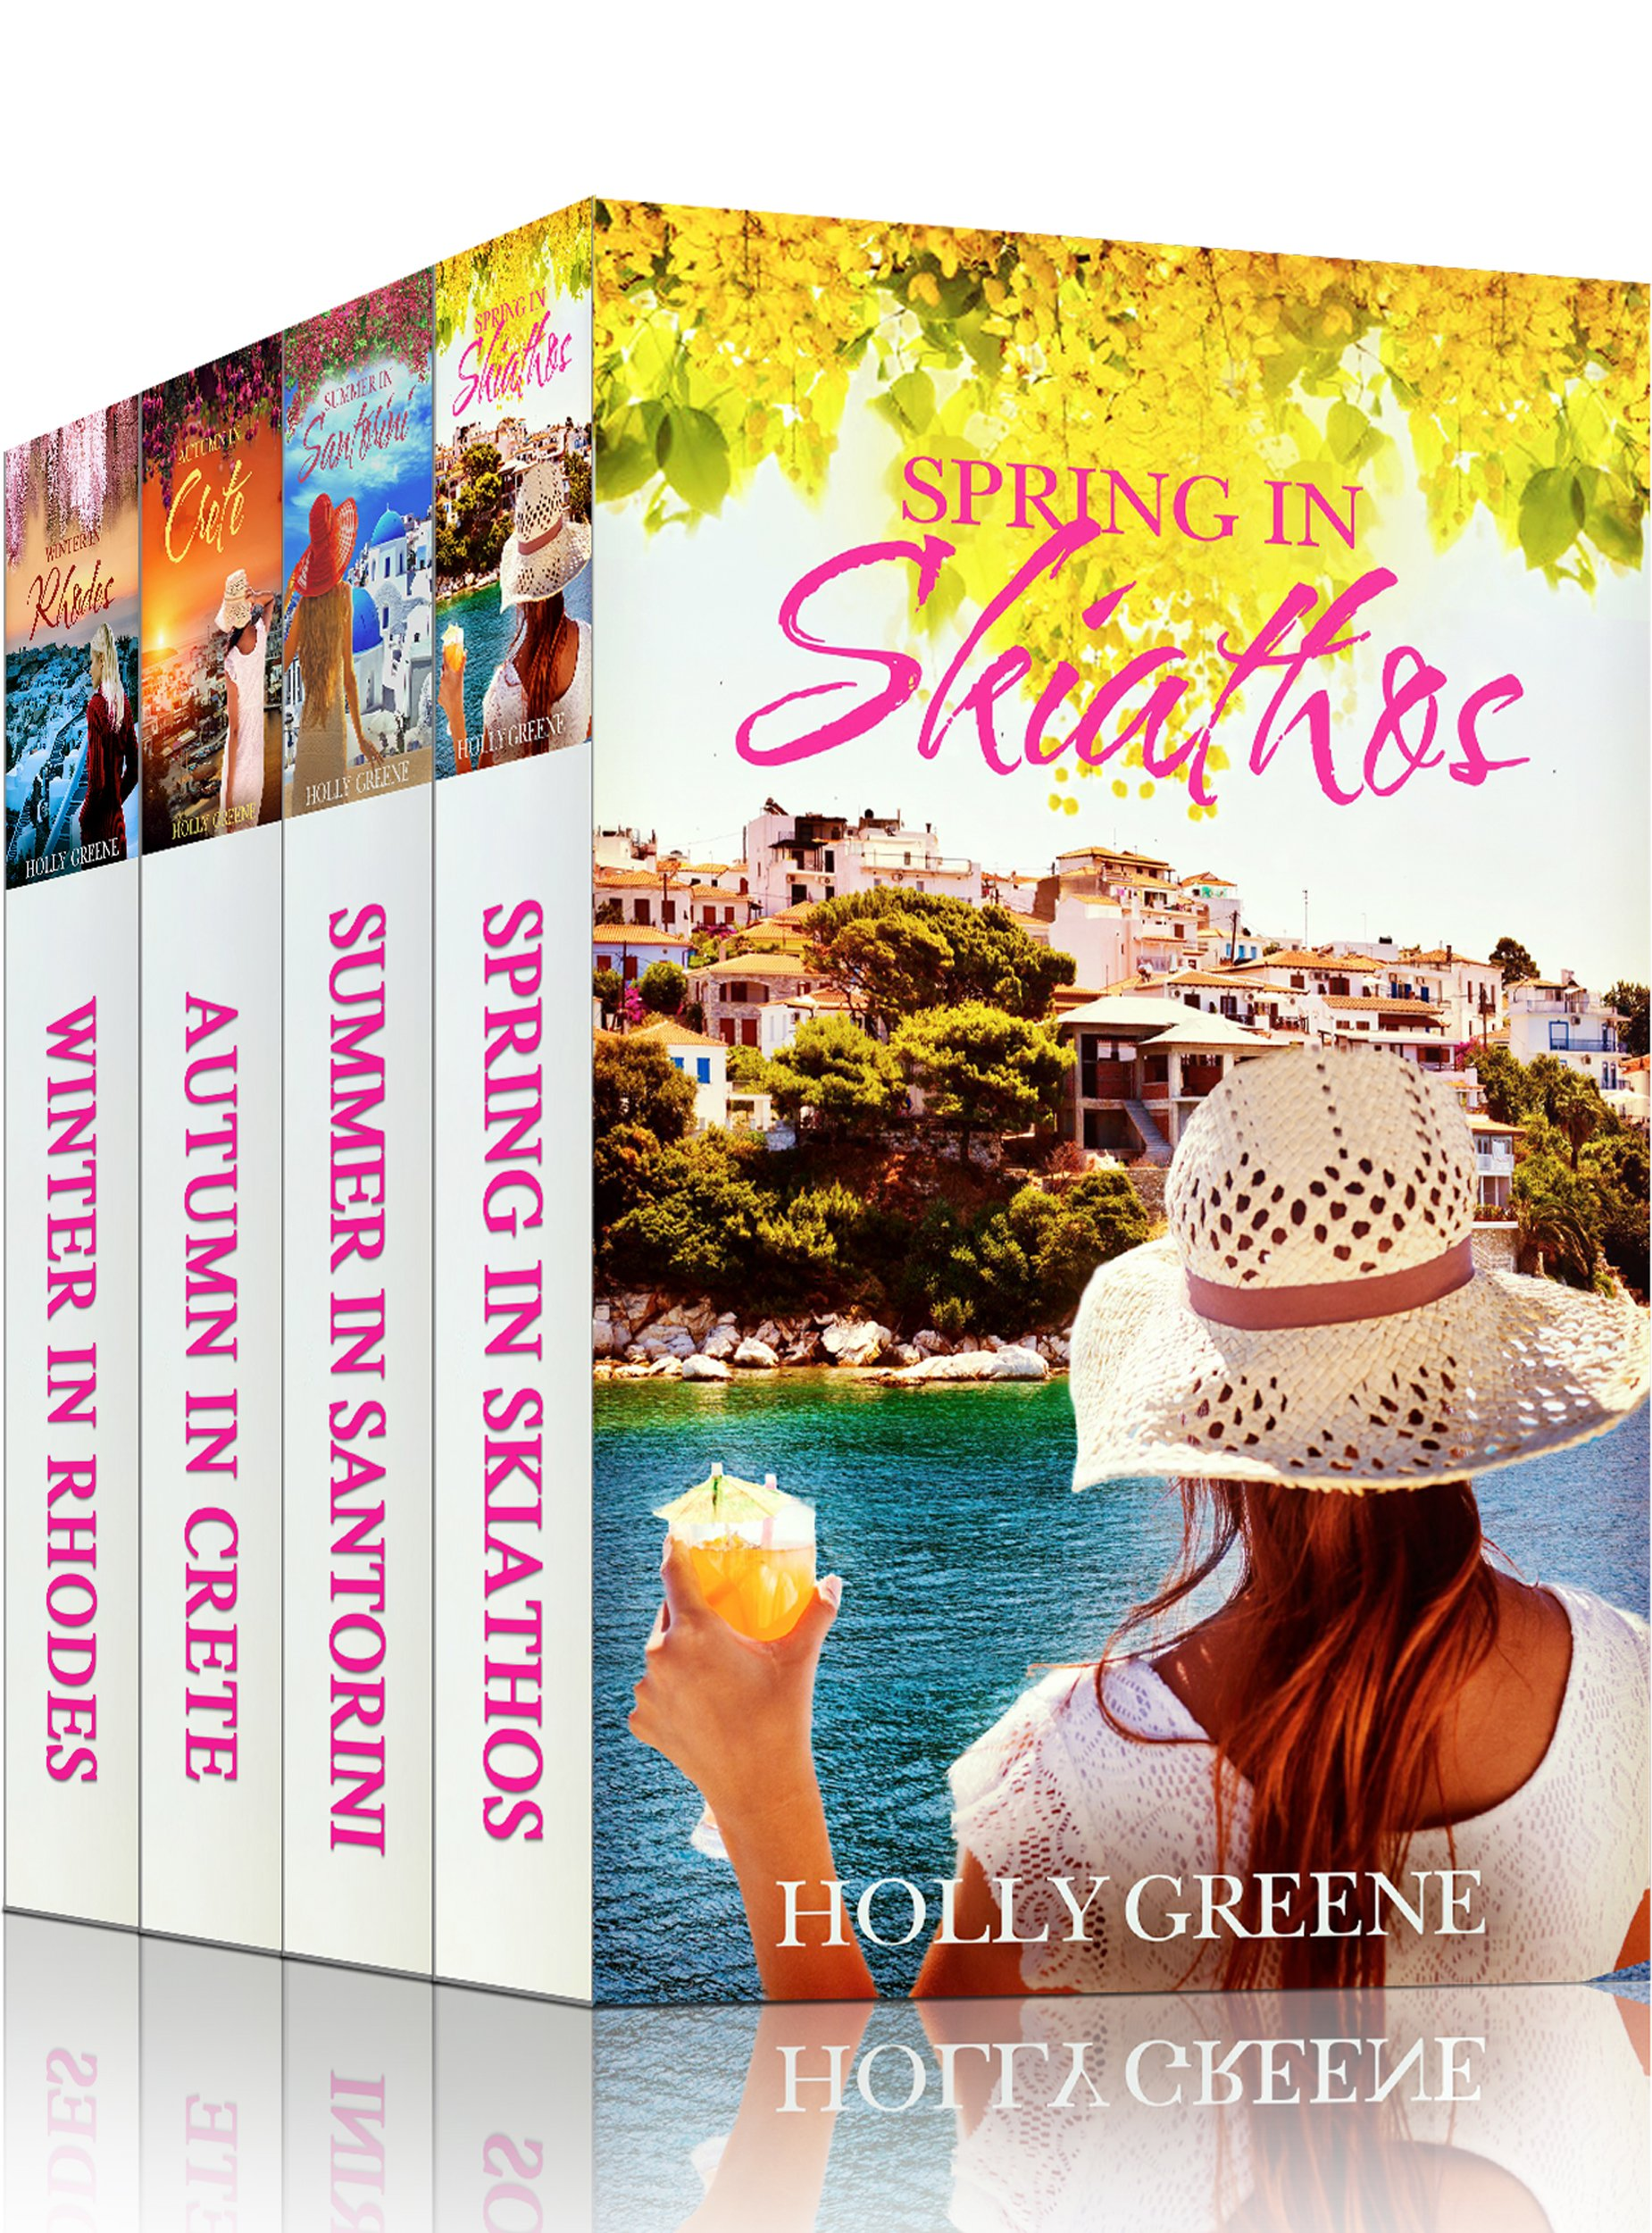 Escape to the Islands: The Four Seasons Greek Island Collection